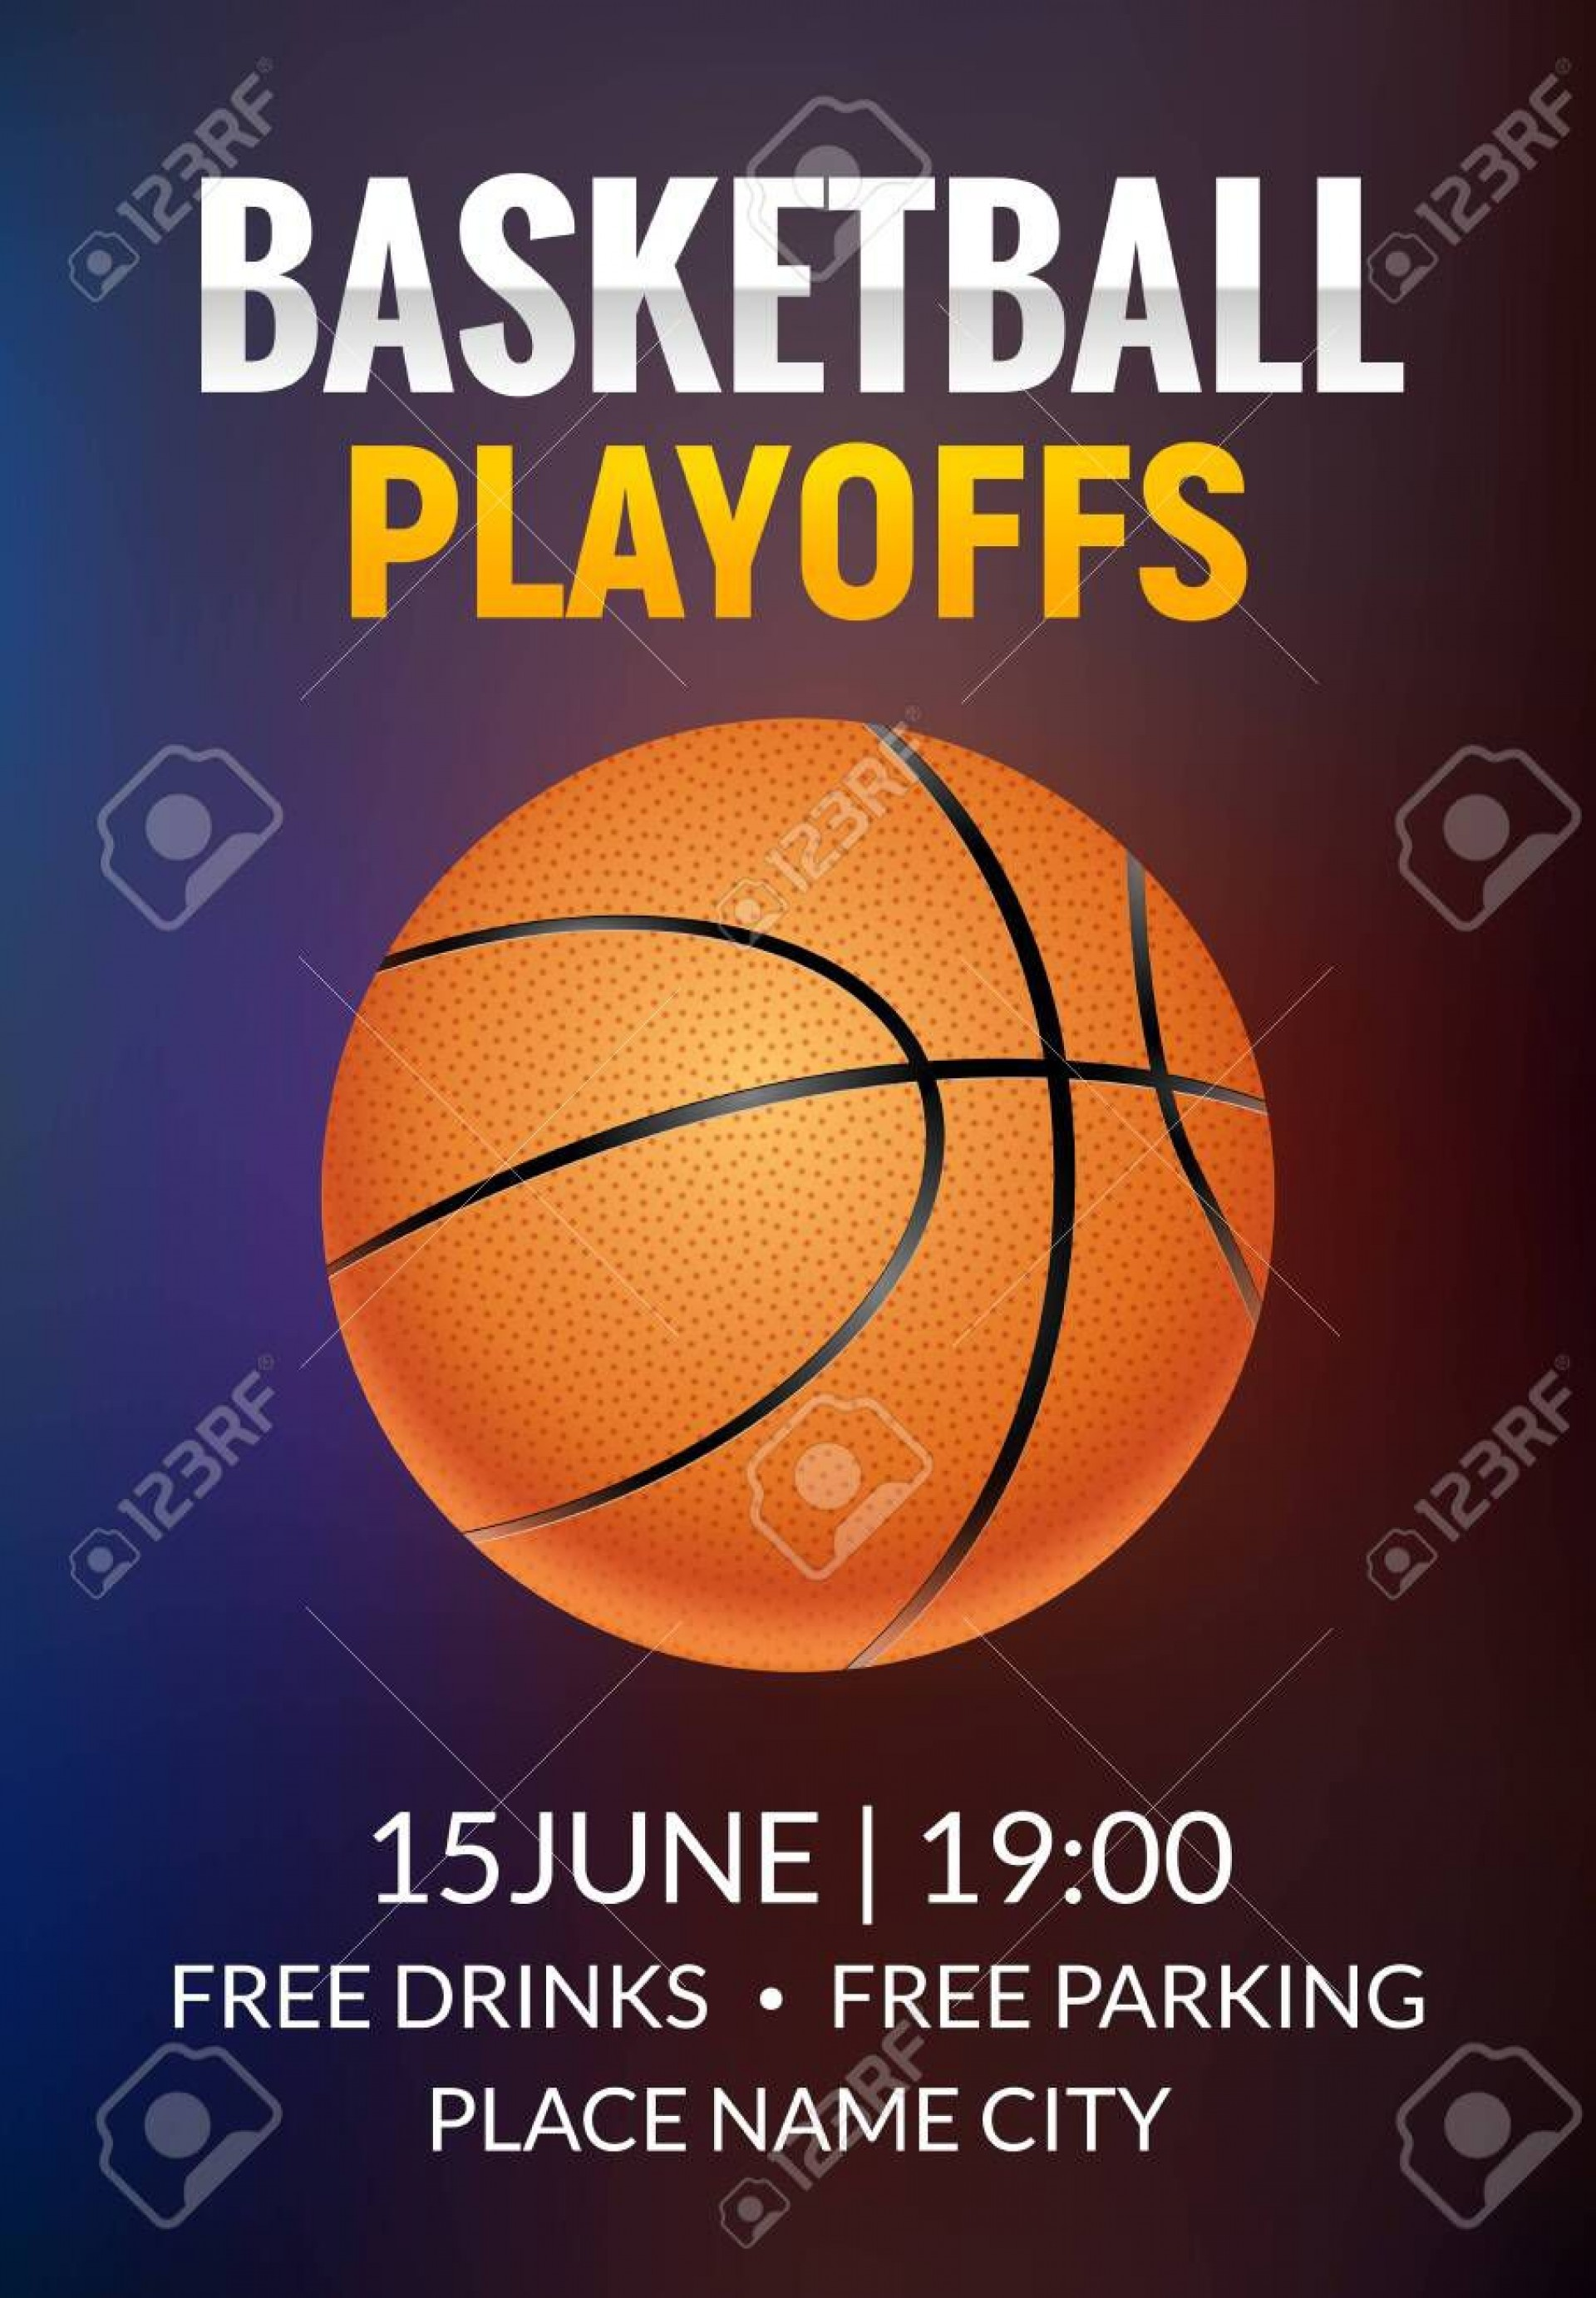 002 Formidable Basketball Tournament Flyer Template High Resolution  3 On Free1920